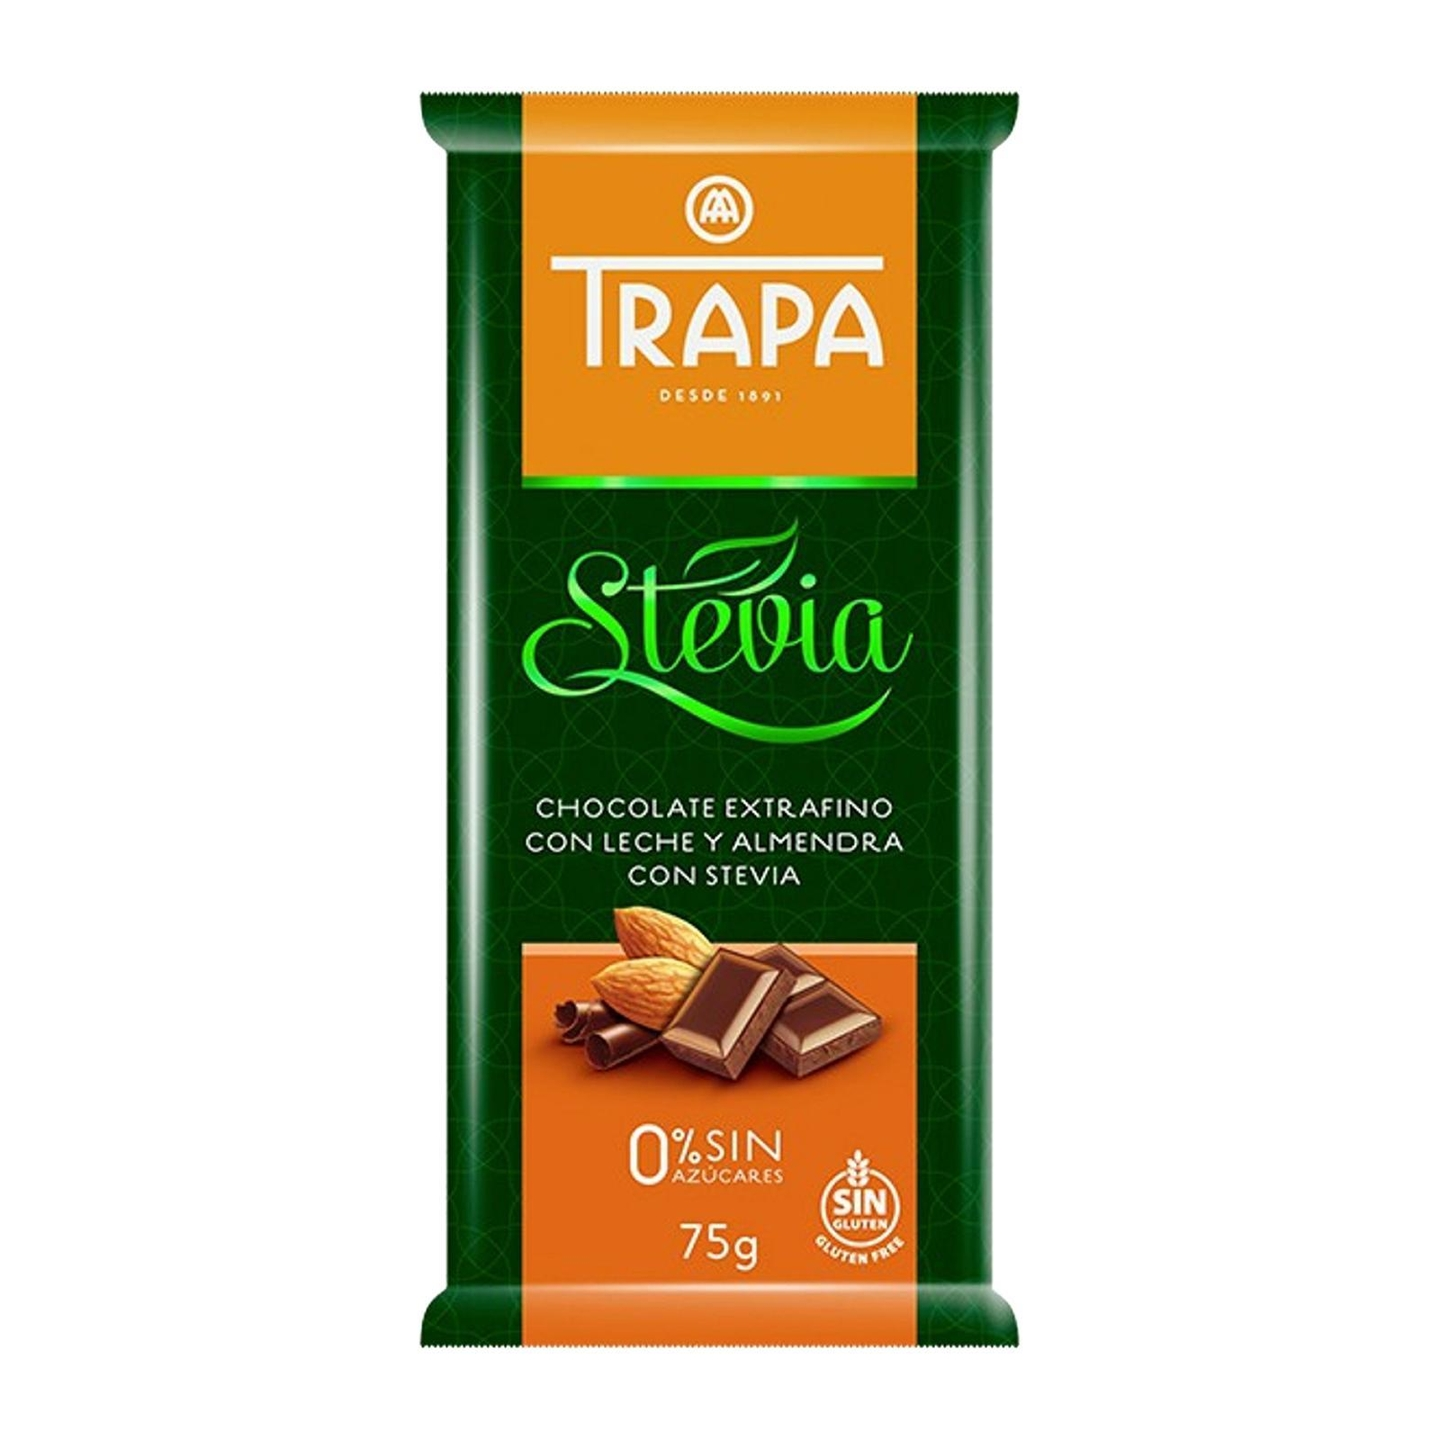 Trapa Sugar Free Almond Milk Chocolate with Stevia - Gluten Free